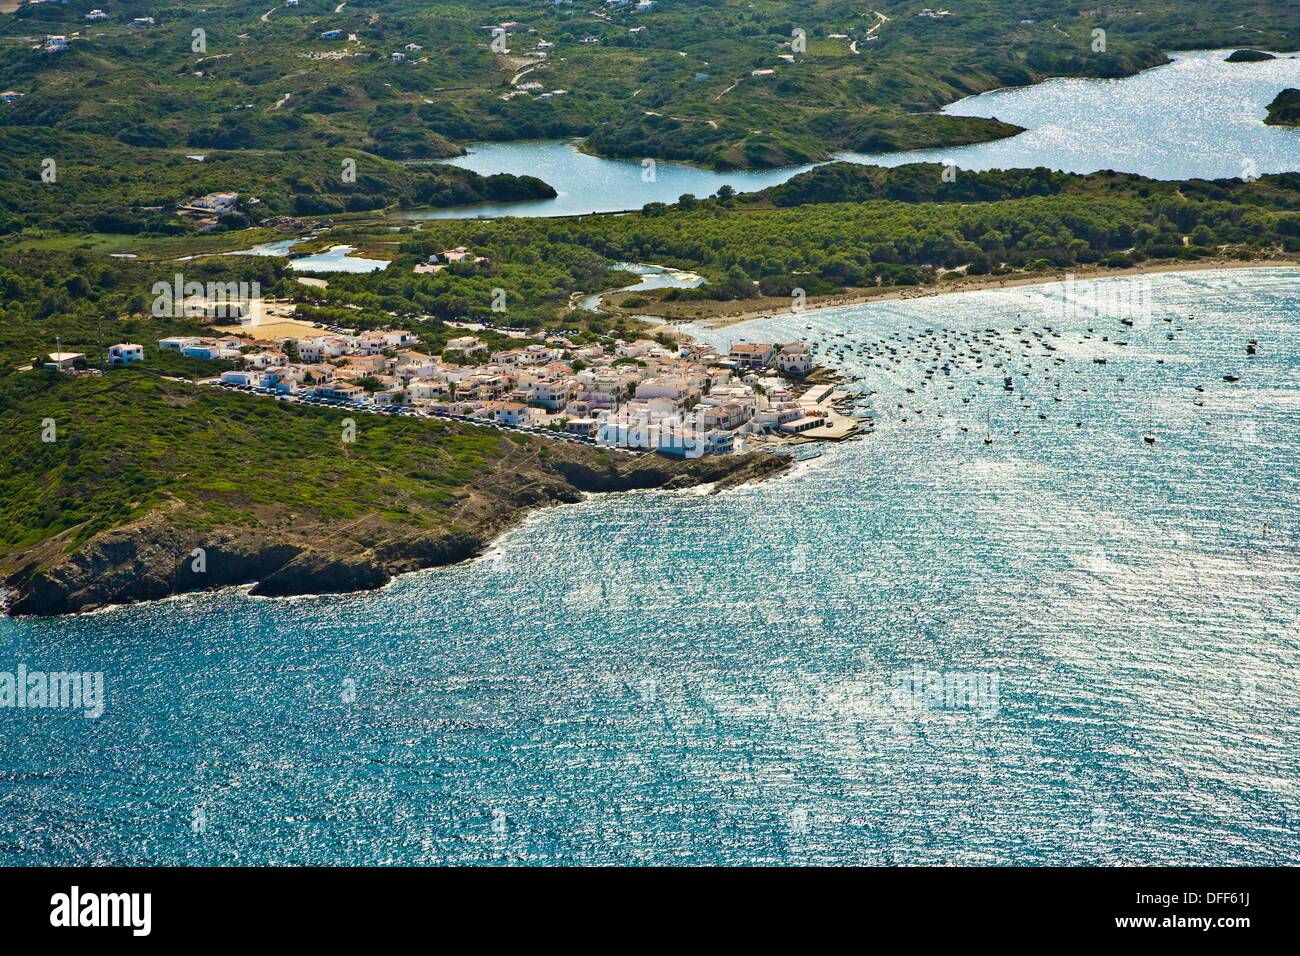 Es Grau, Minorca, Balearic Islands, Spain - Stock Image